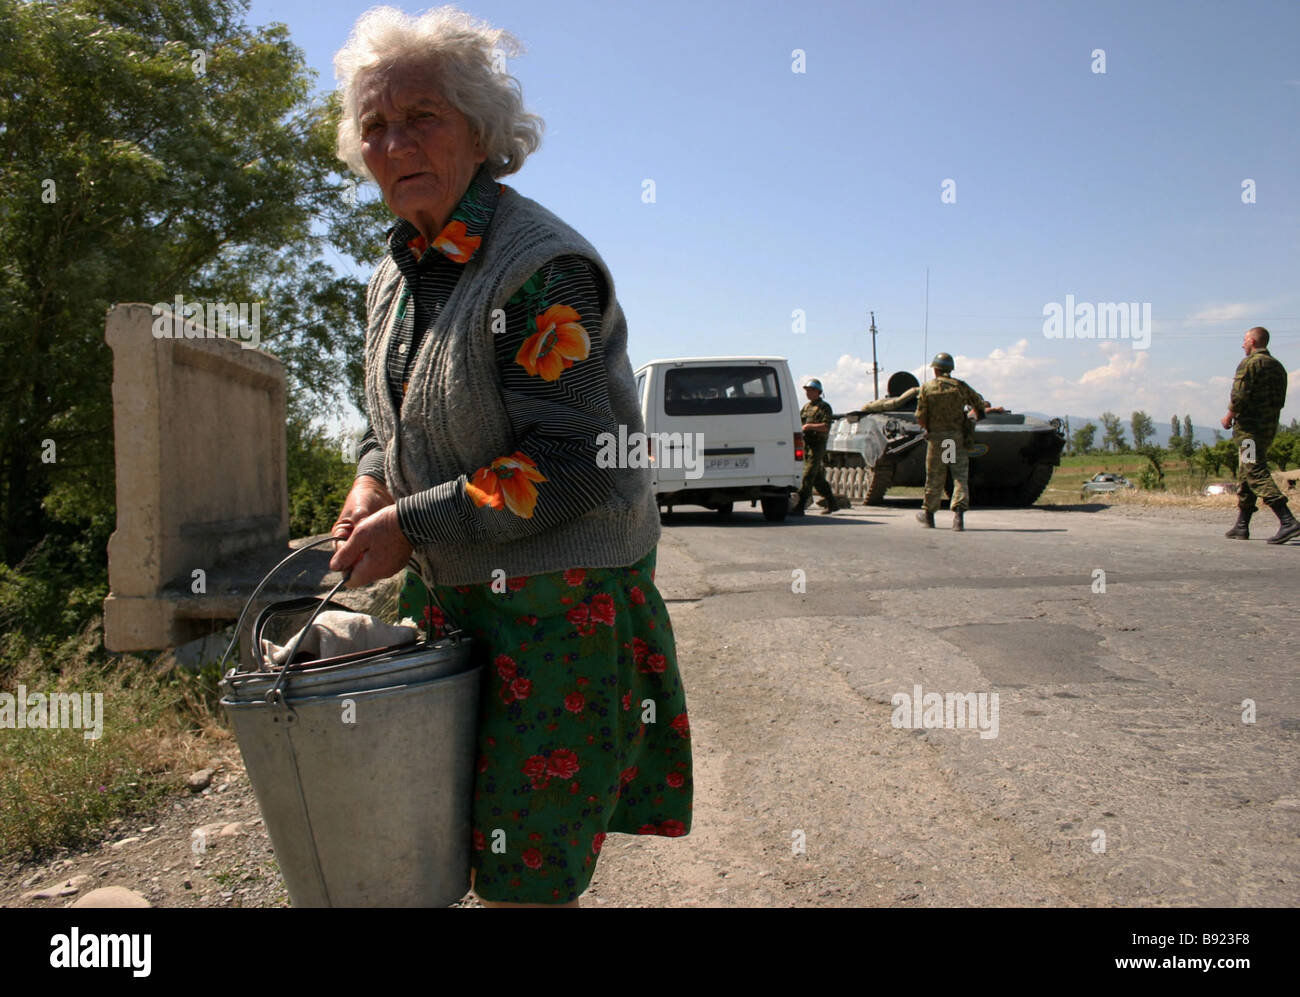 A roadblock manned by Russian peacekeepers near the village of Megvrekisi in the area of the Georgian Ossetian conflict - Stock Image